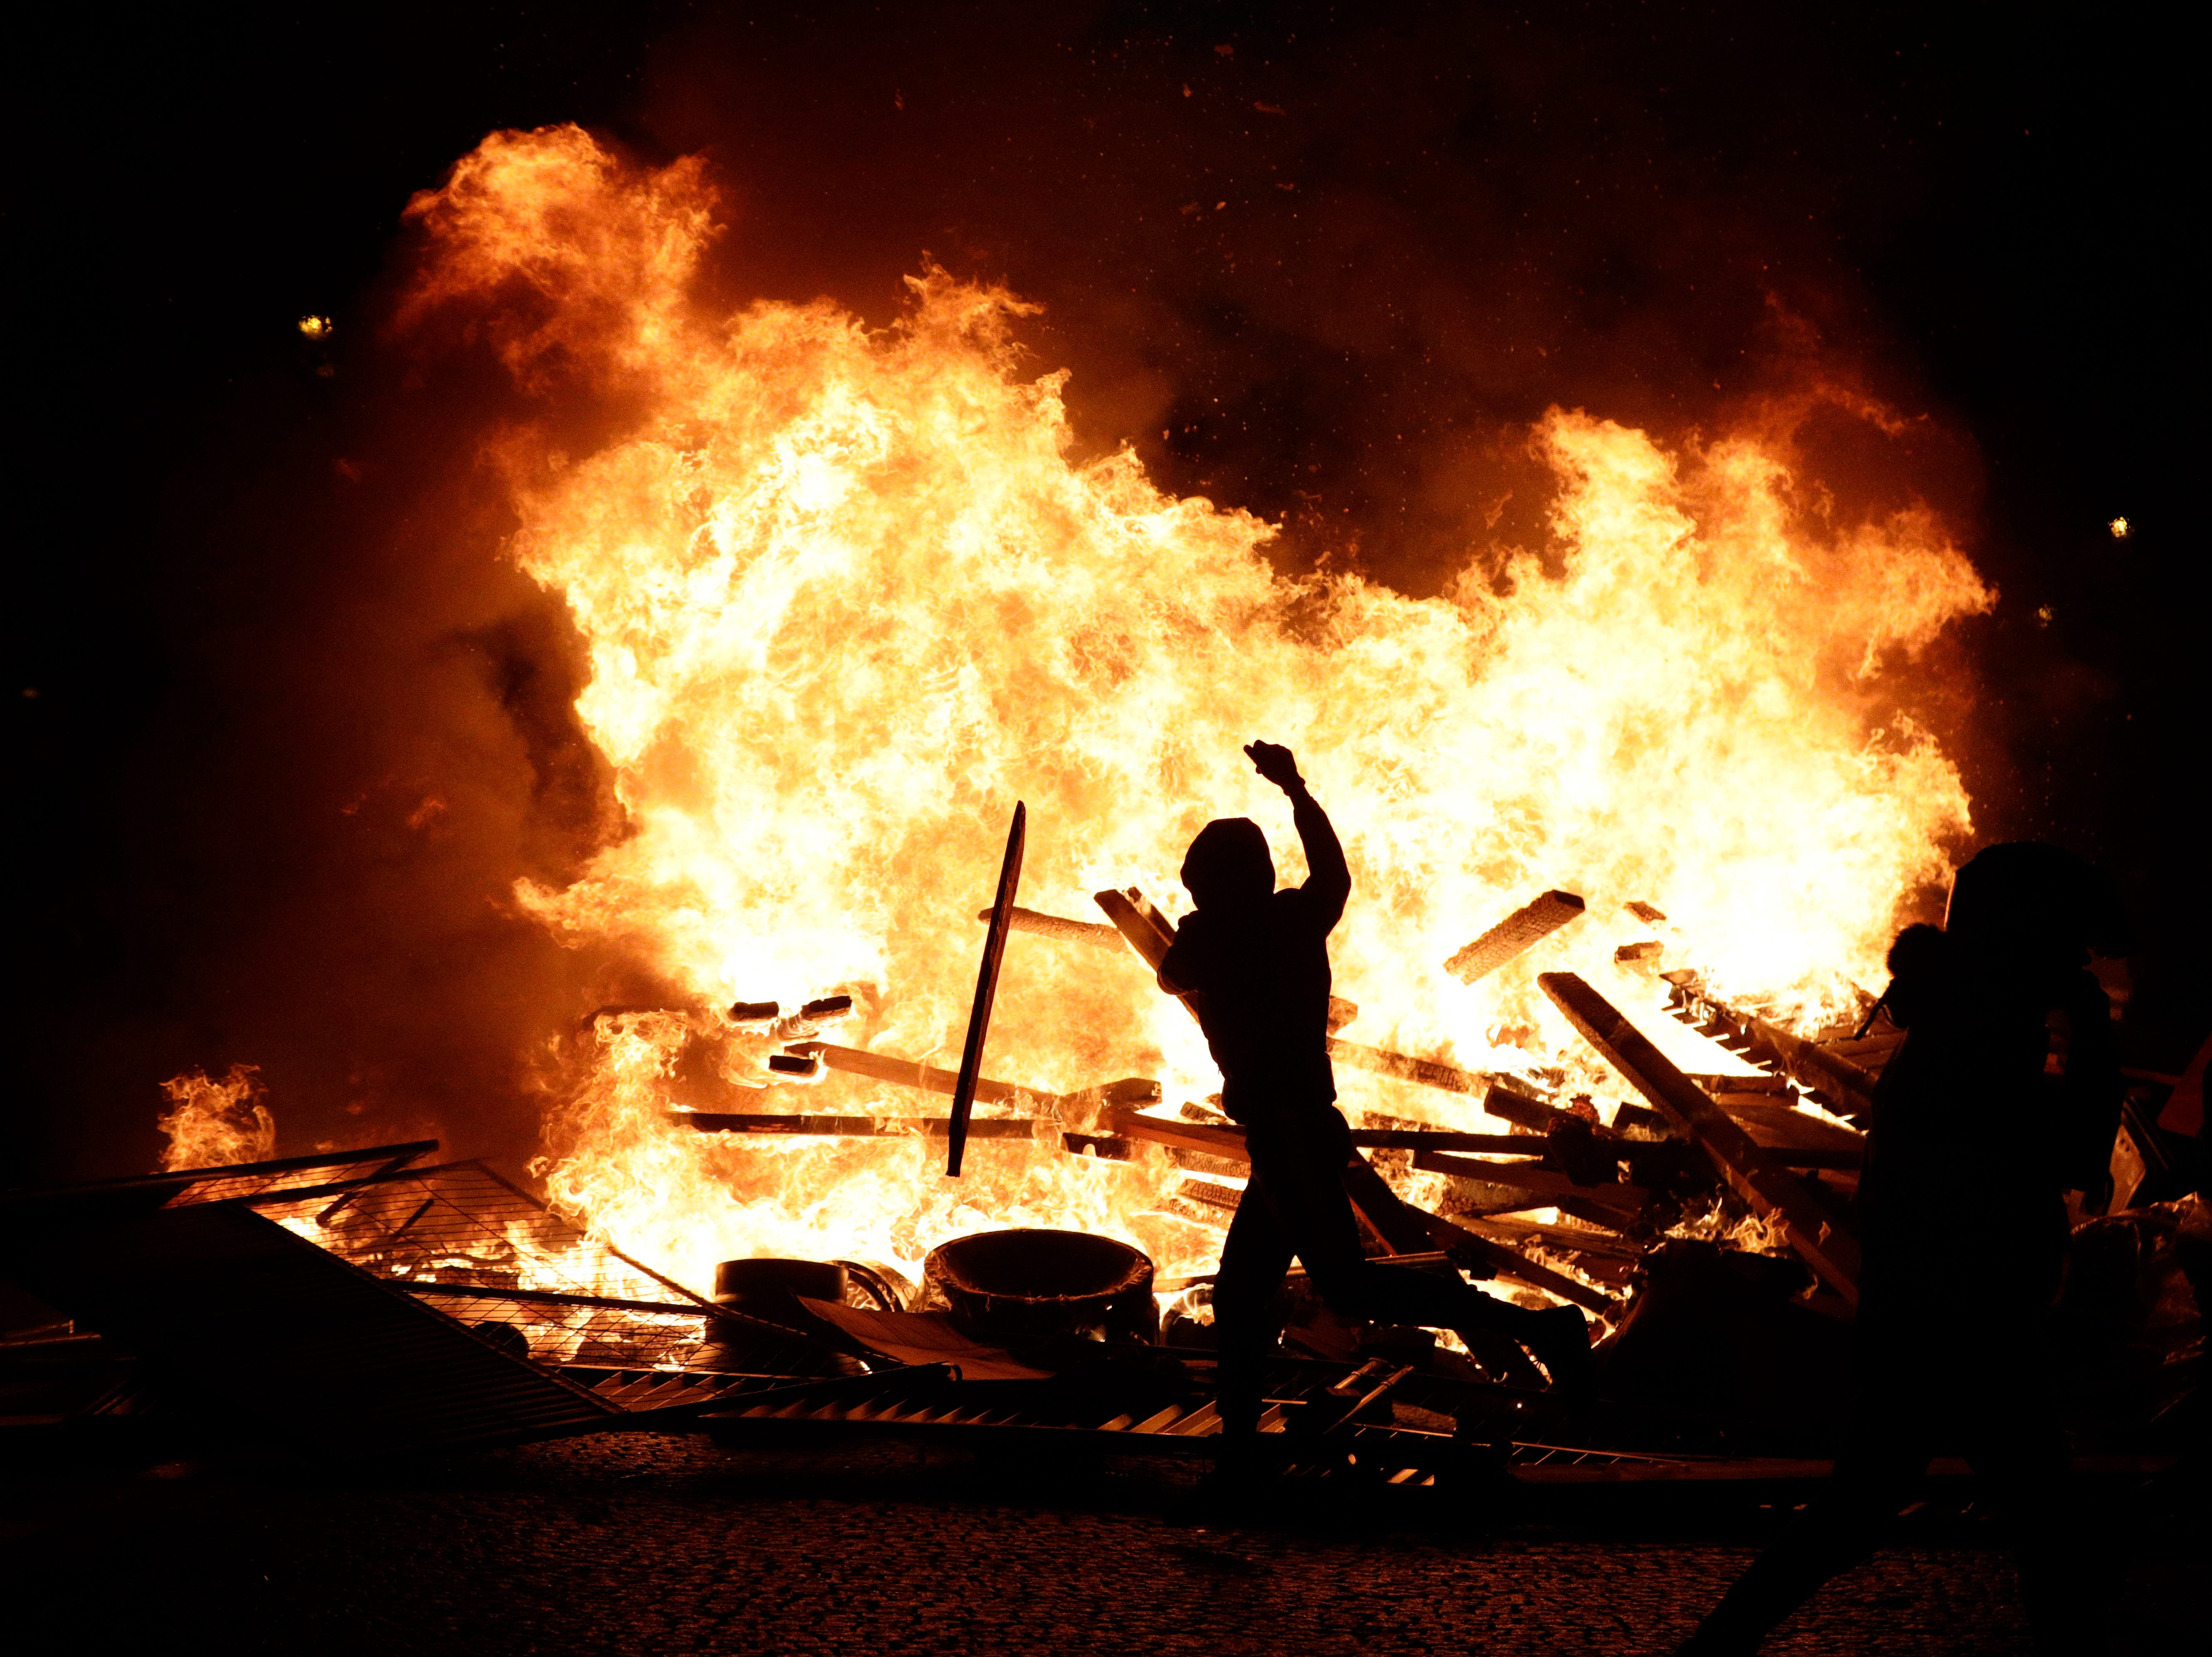 A demonstrator throws debris at a burning barricade while protesting with others against the rising of the fuel taxes on the famed Champs Elysees avenue, in Paris, France, Saturday, Nov. 24, 2018.